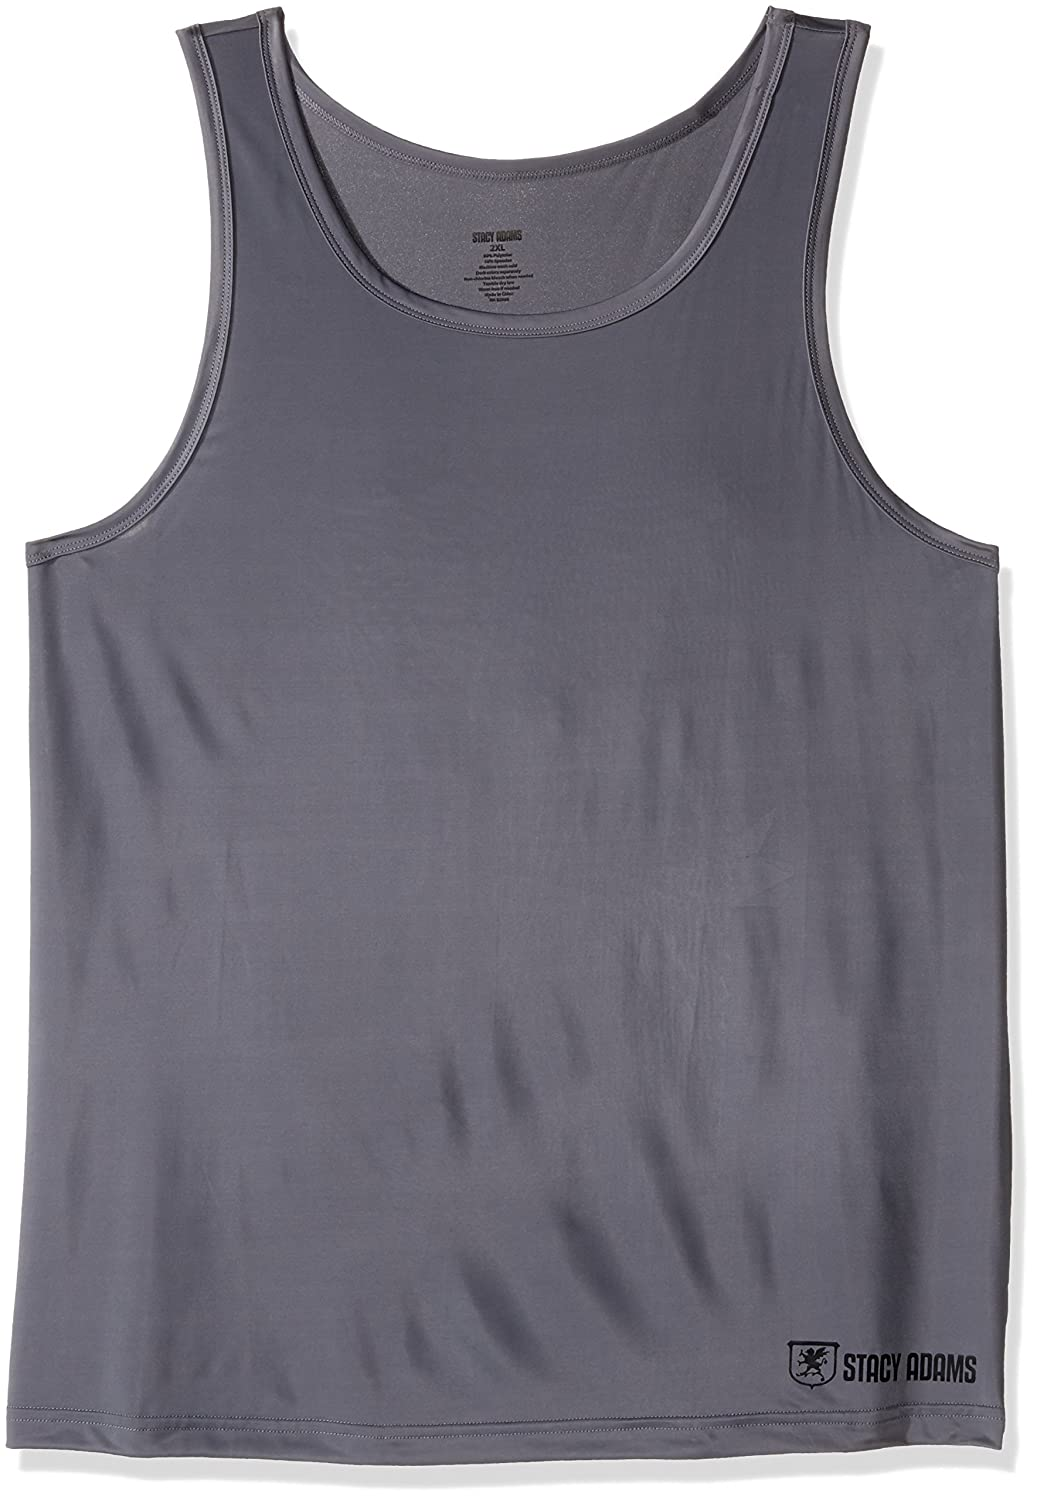 STACY ADAMS Tall Mens Big Tank Top